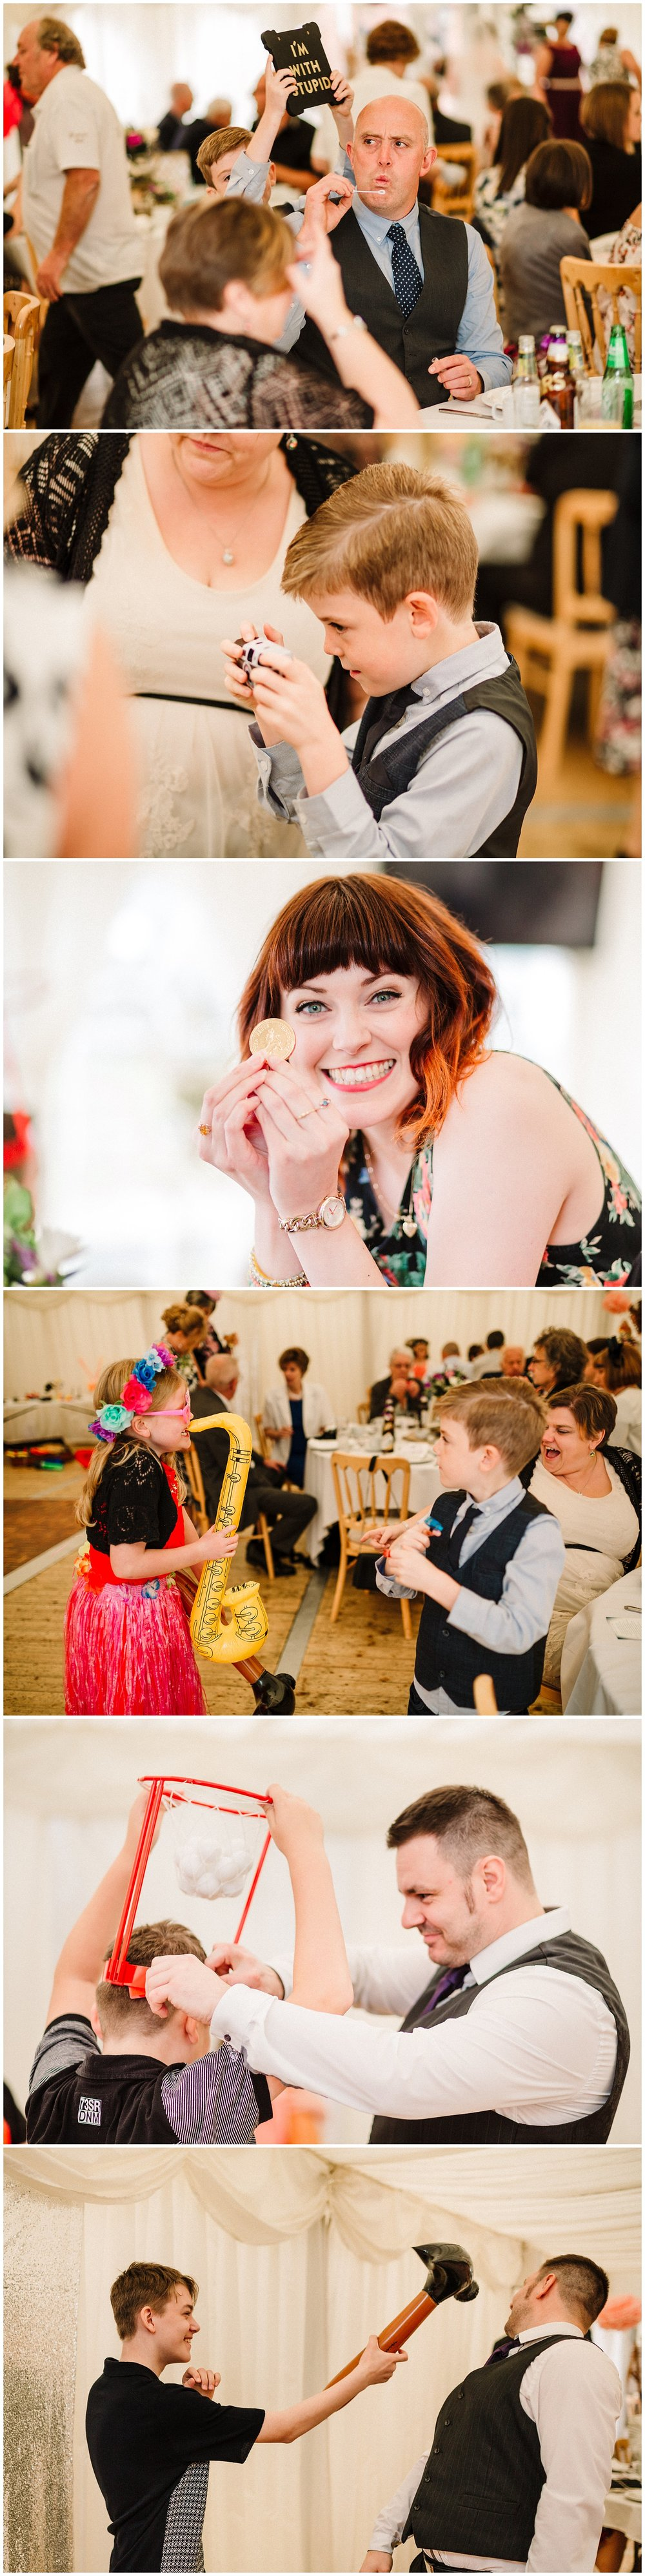 documentary wedding photography at a yorkshire wedding